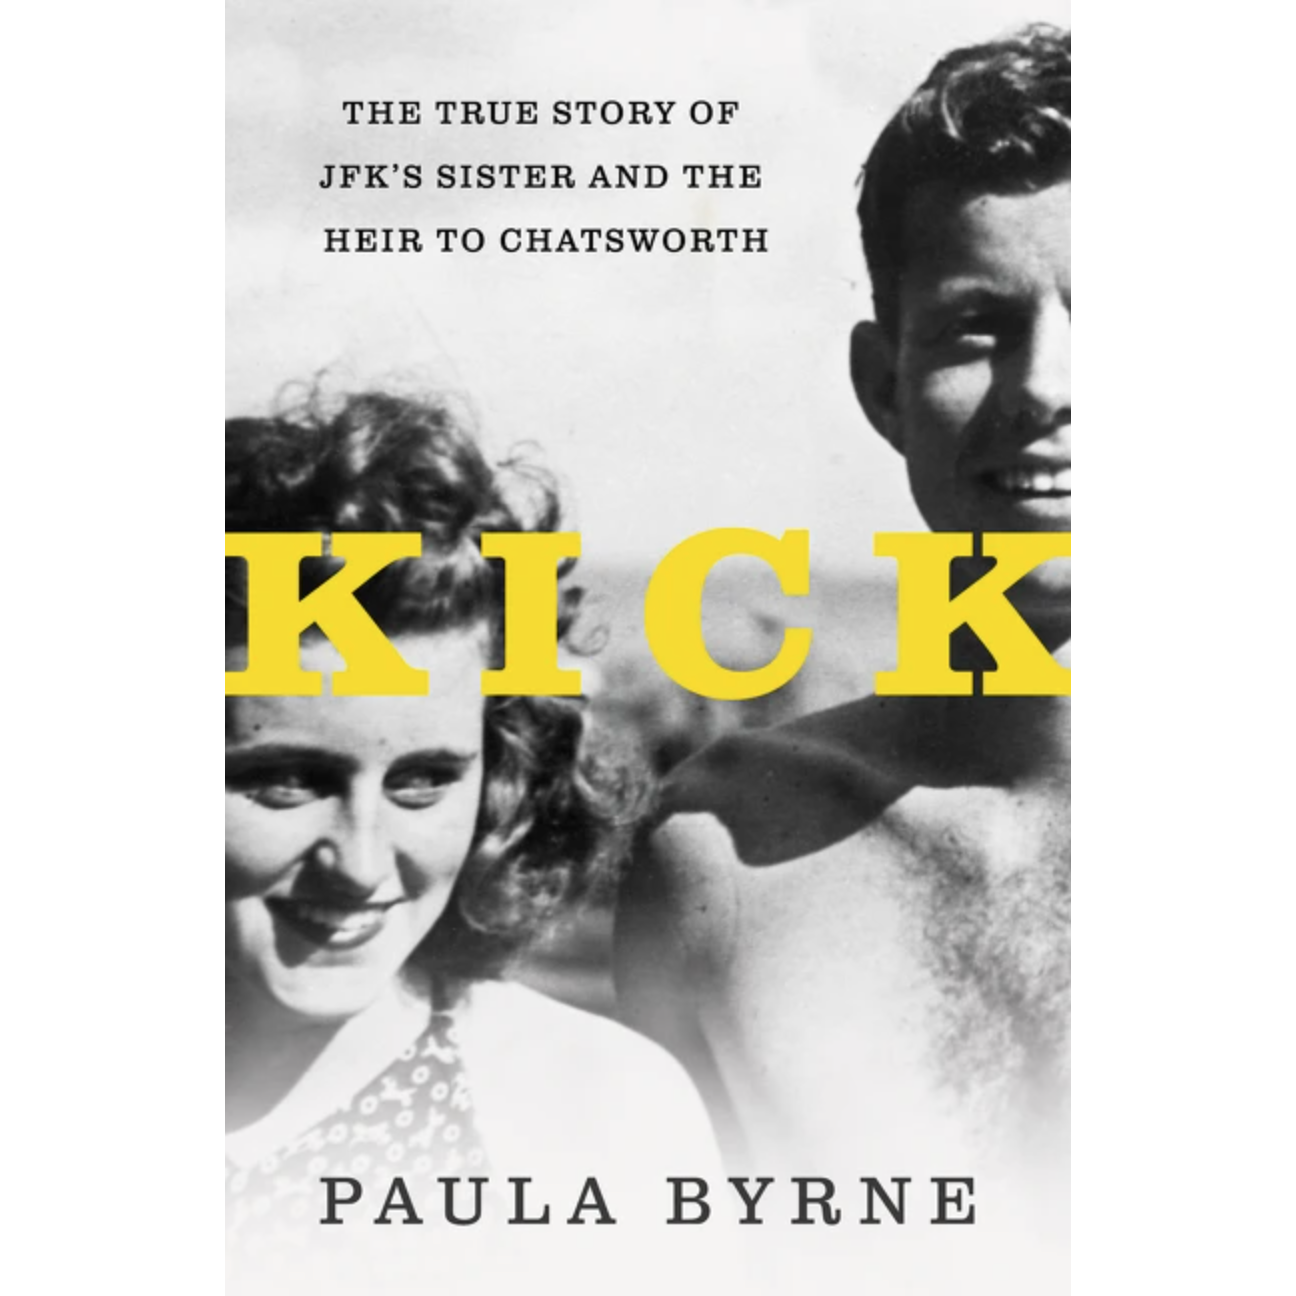 Kick: The True Story of JFK's Sister and the Heir to Chatsworth by Paula Byrne